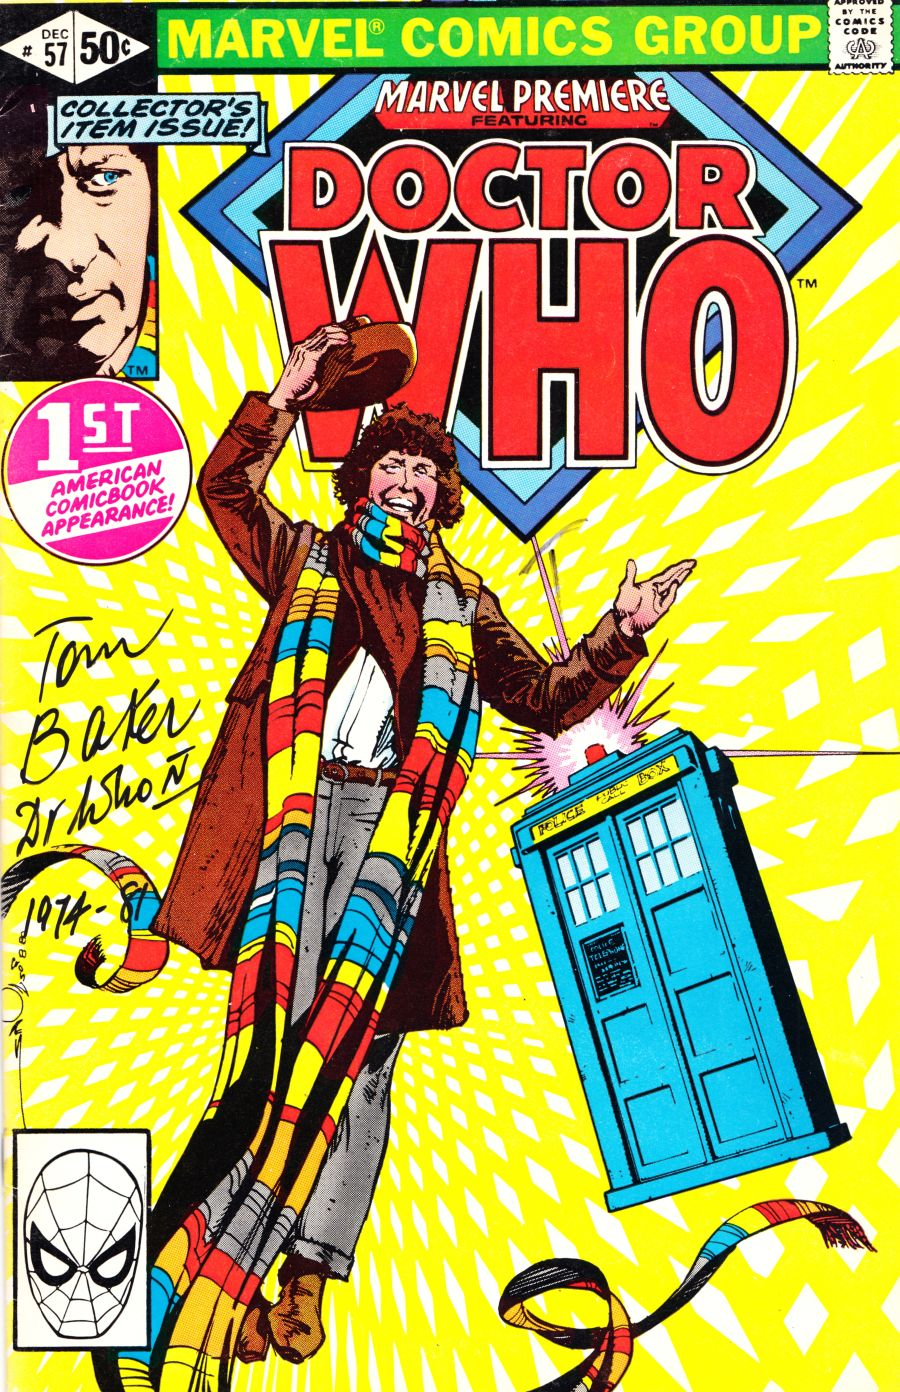 Doctor Who Tom Baker Signed Marvel  #57 1st American Comic Appearance